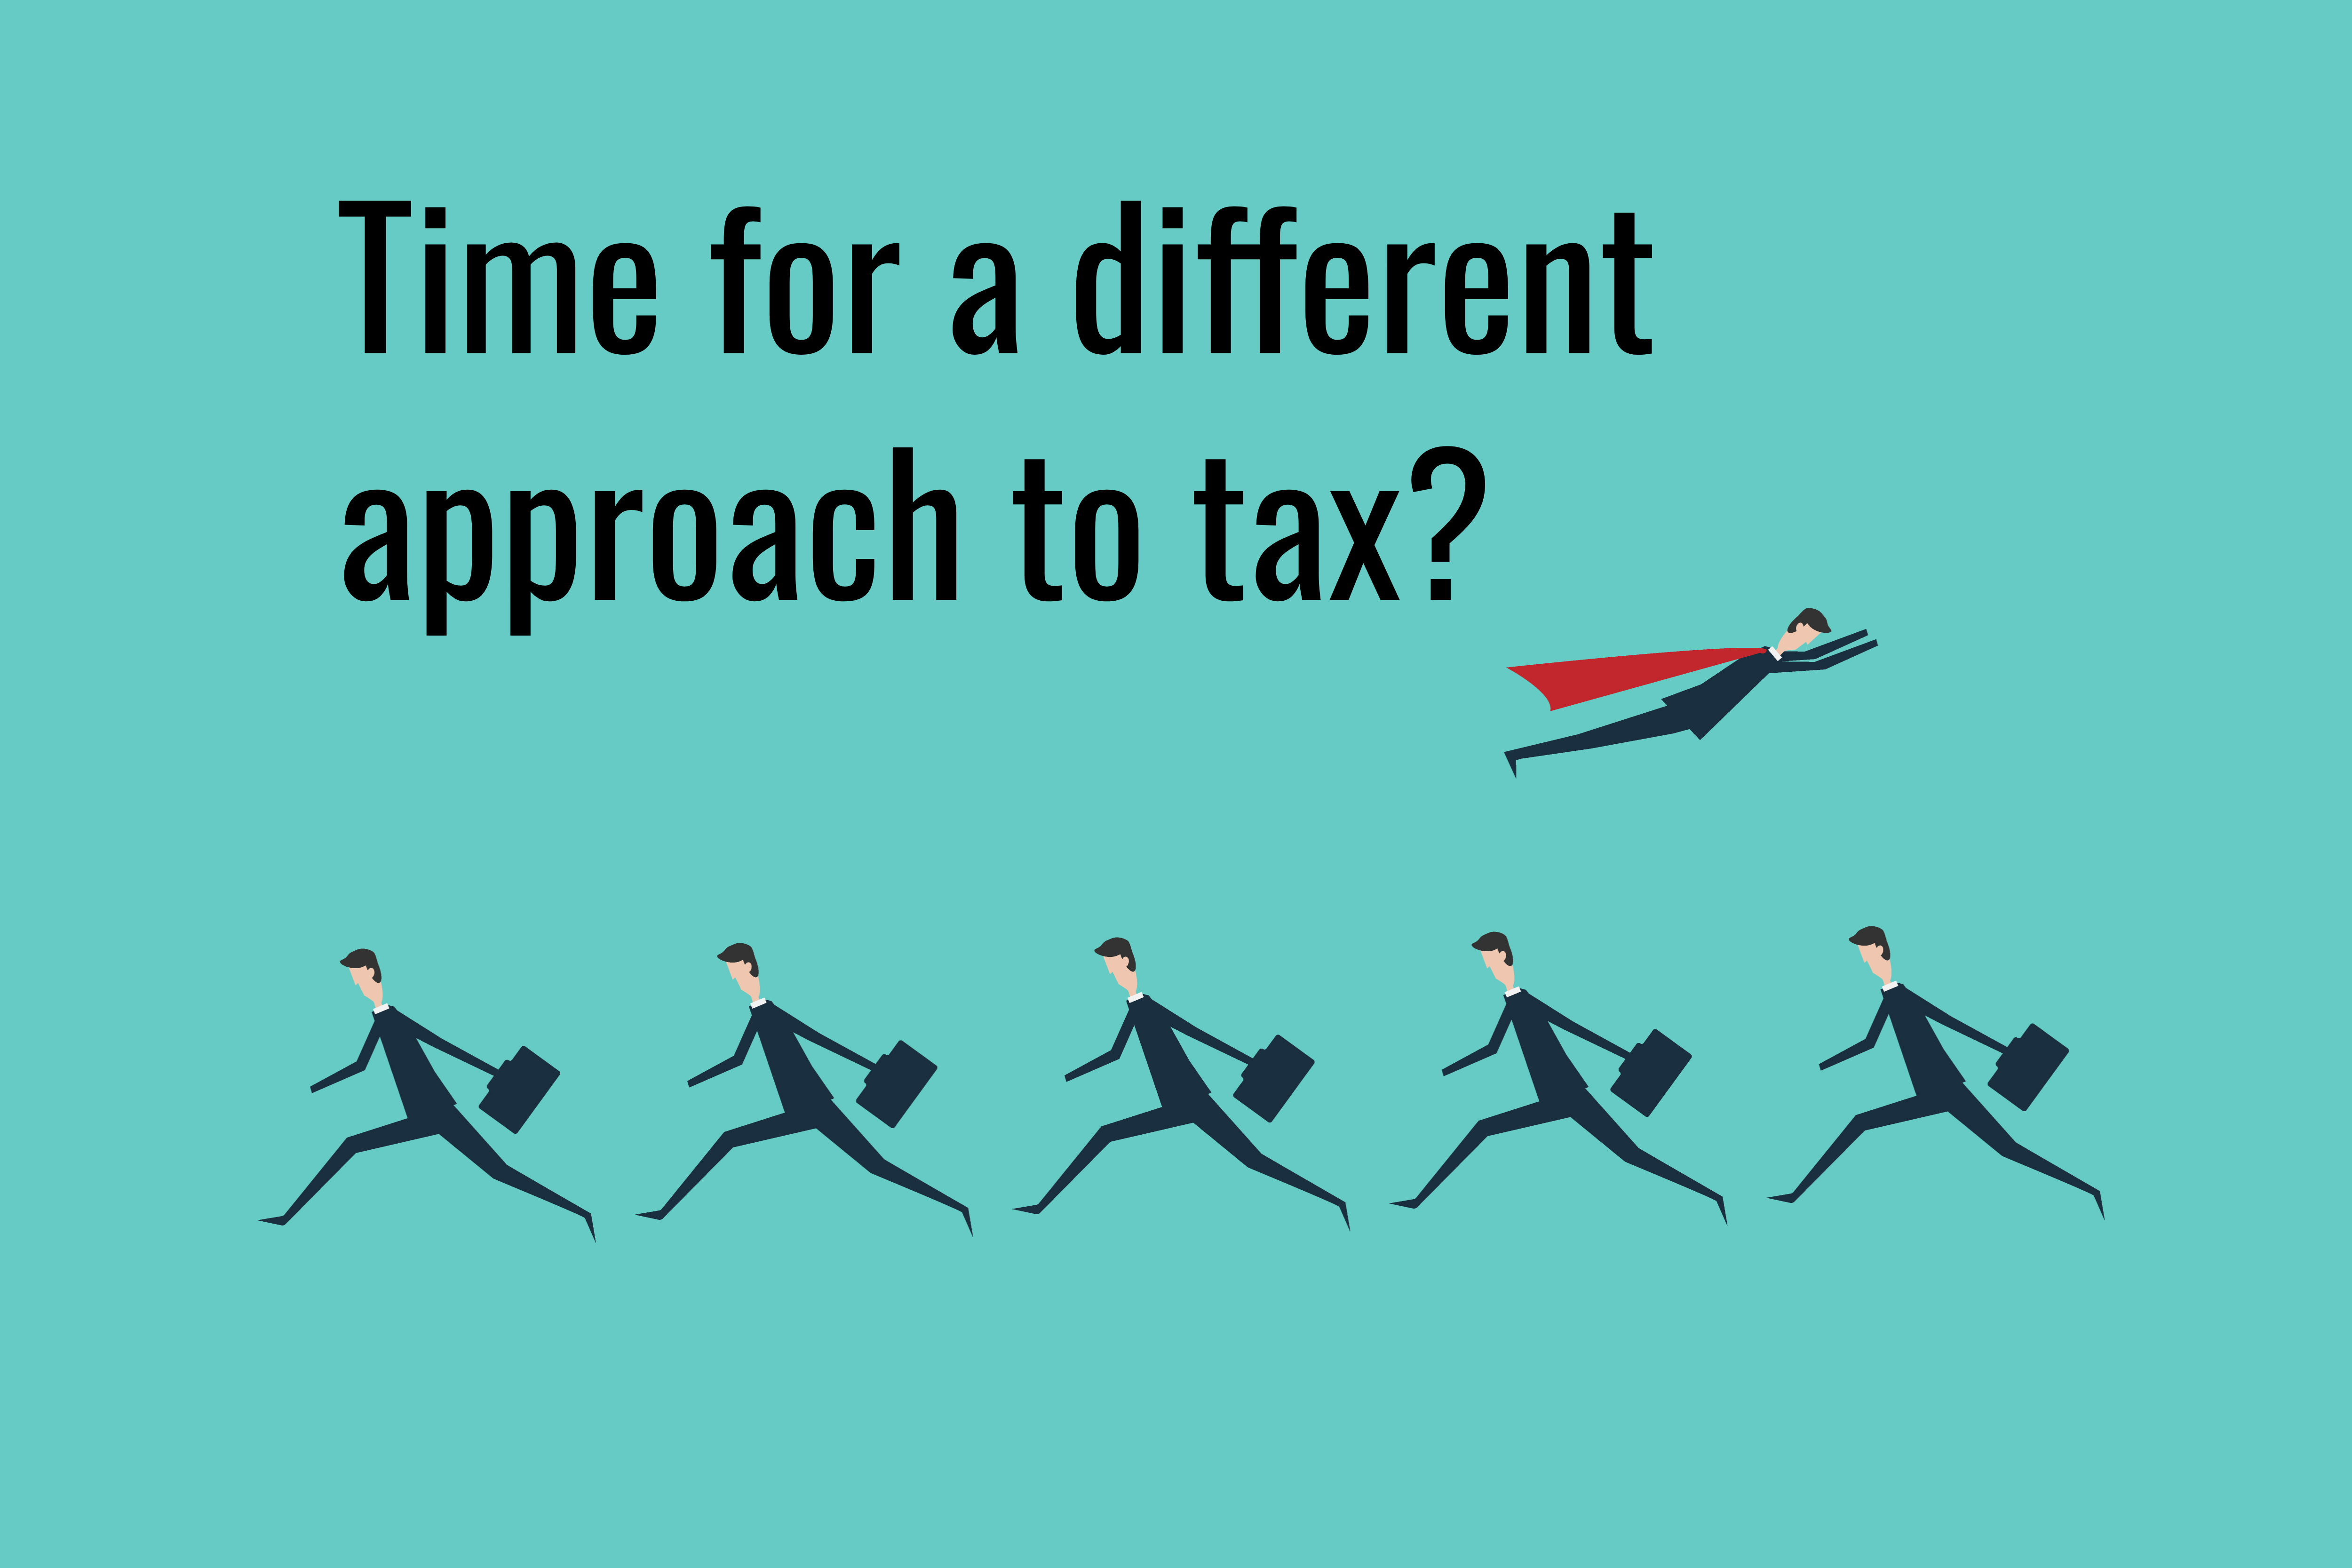 New approach to tax